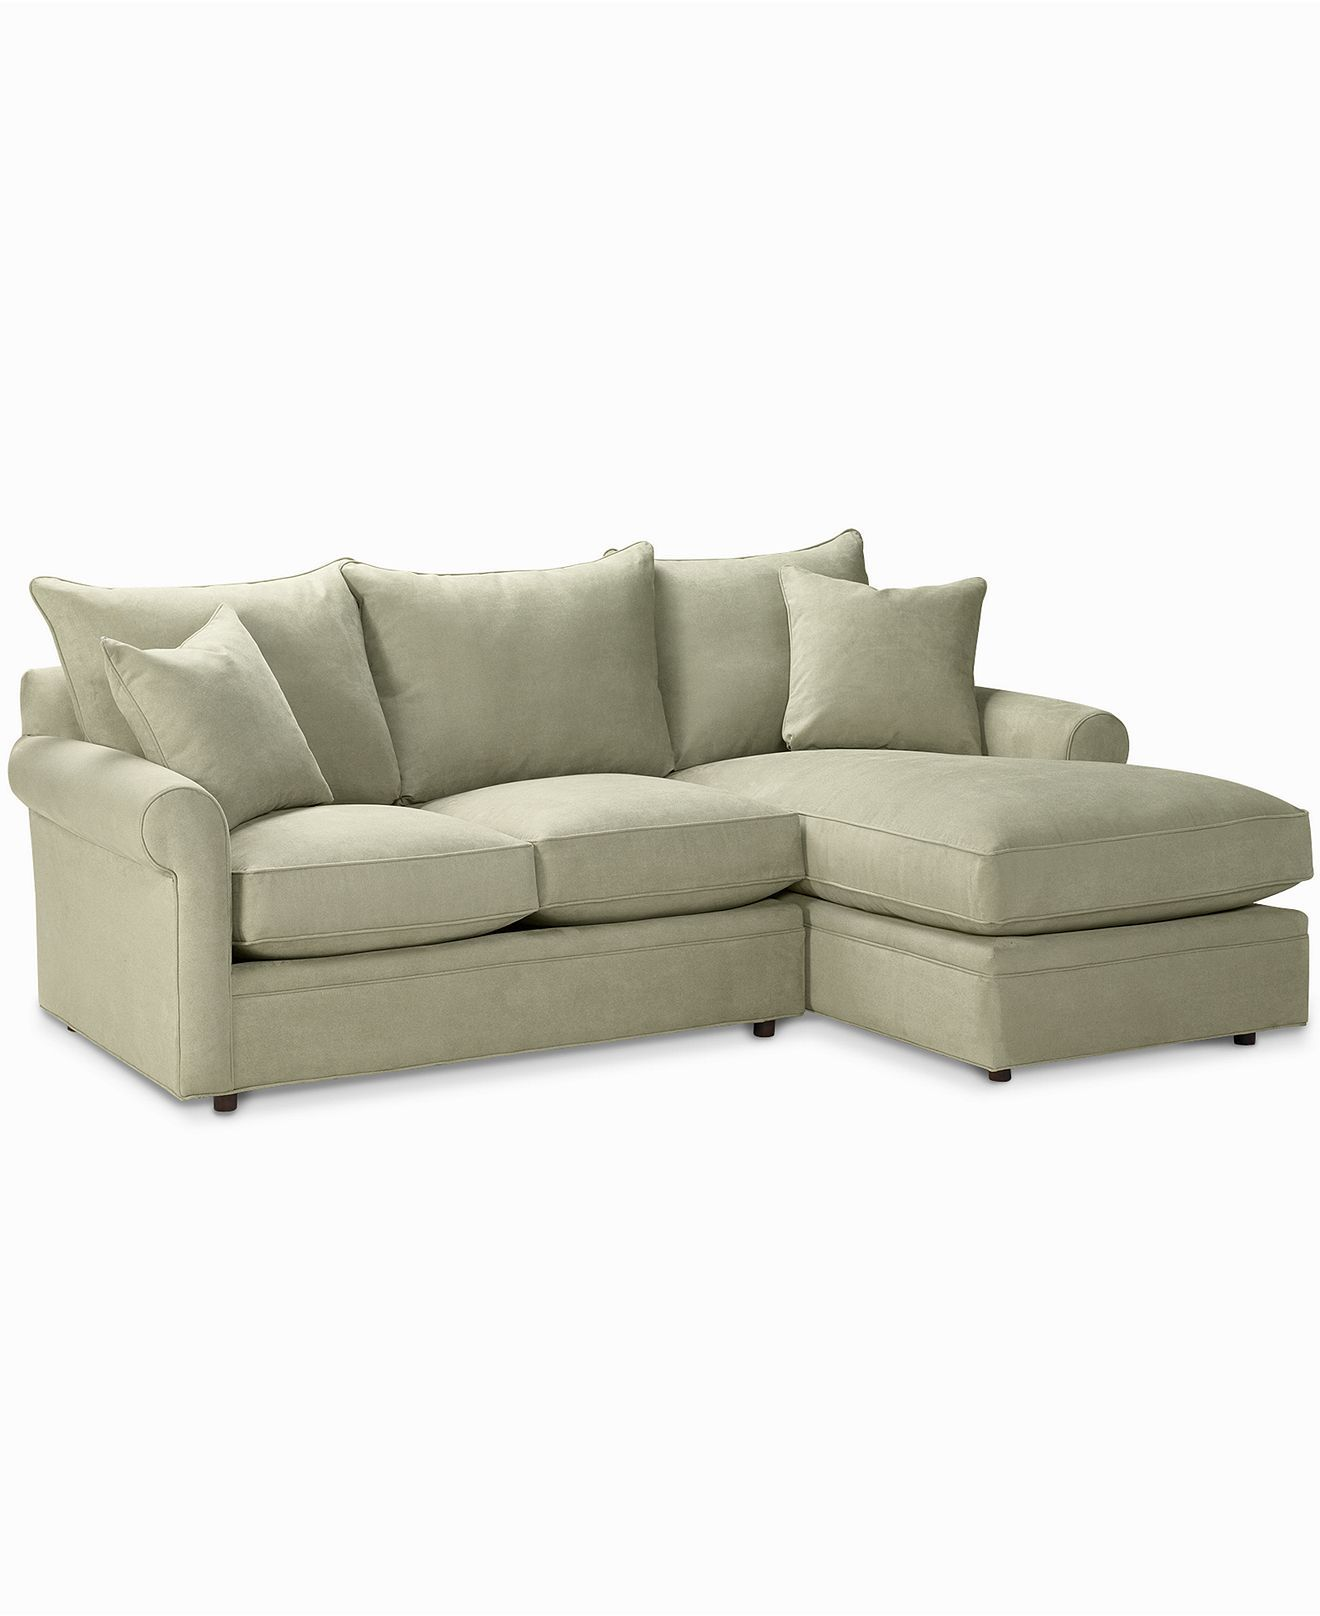 Microfiber Fabric Sofa Courts Mammoth Malaysia Bed Doss Sectional 2 Piece Loveseat